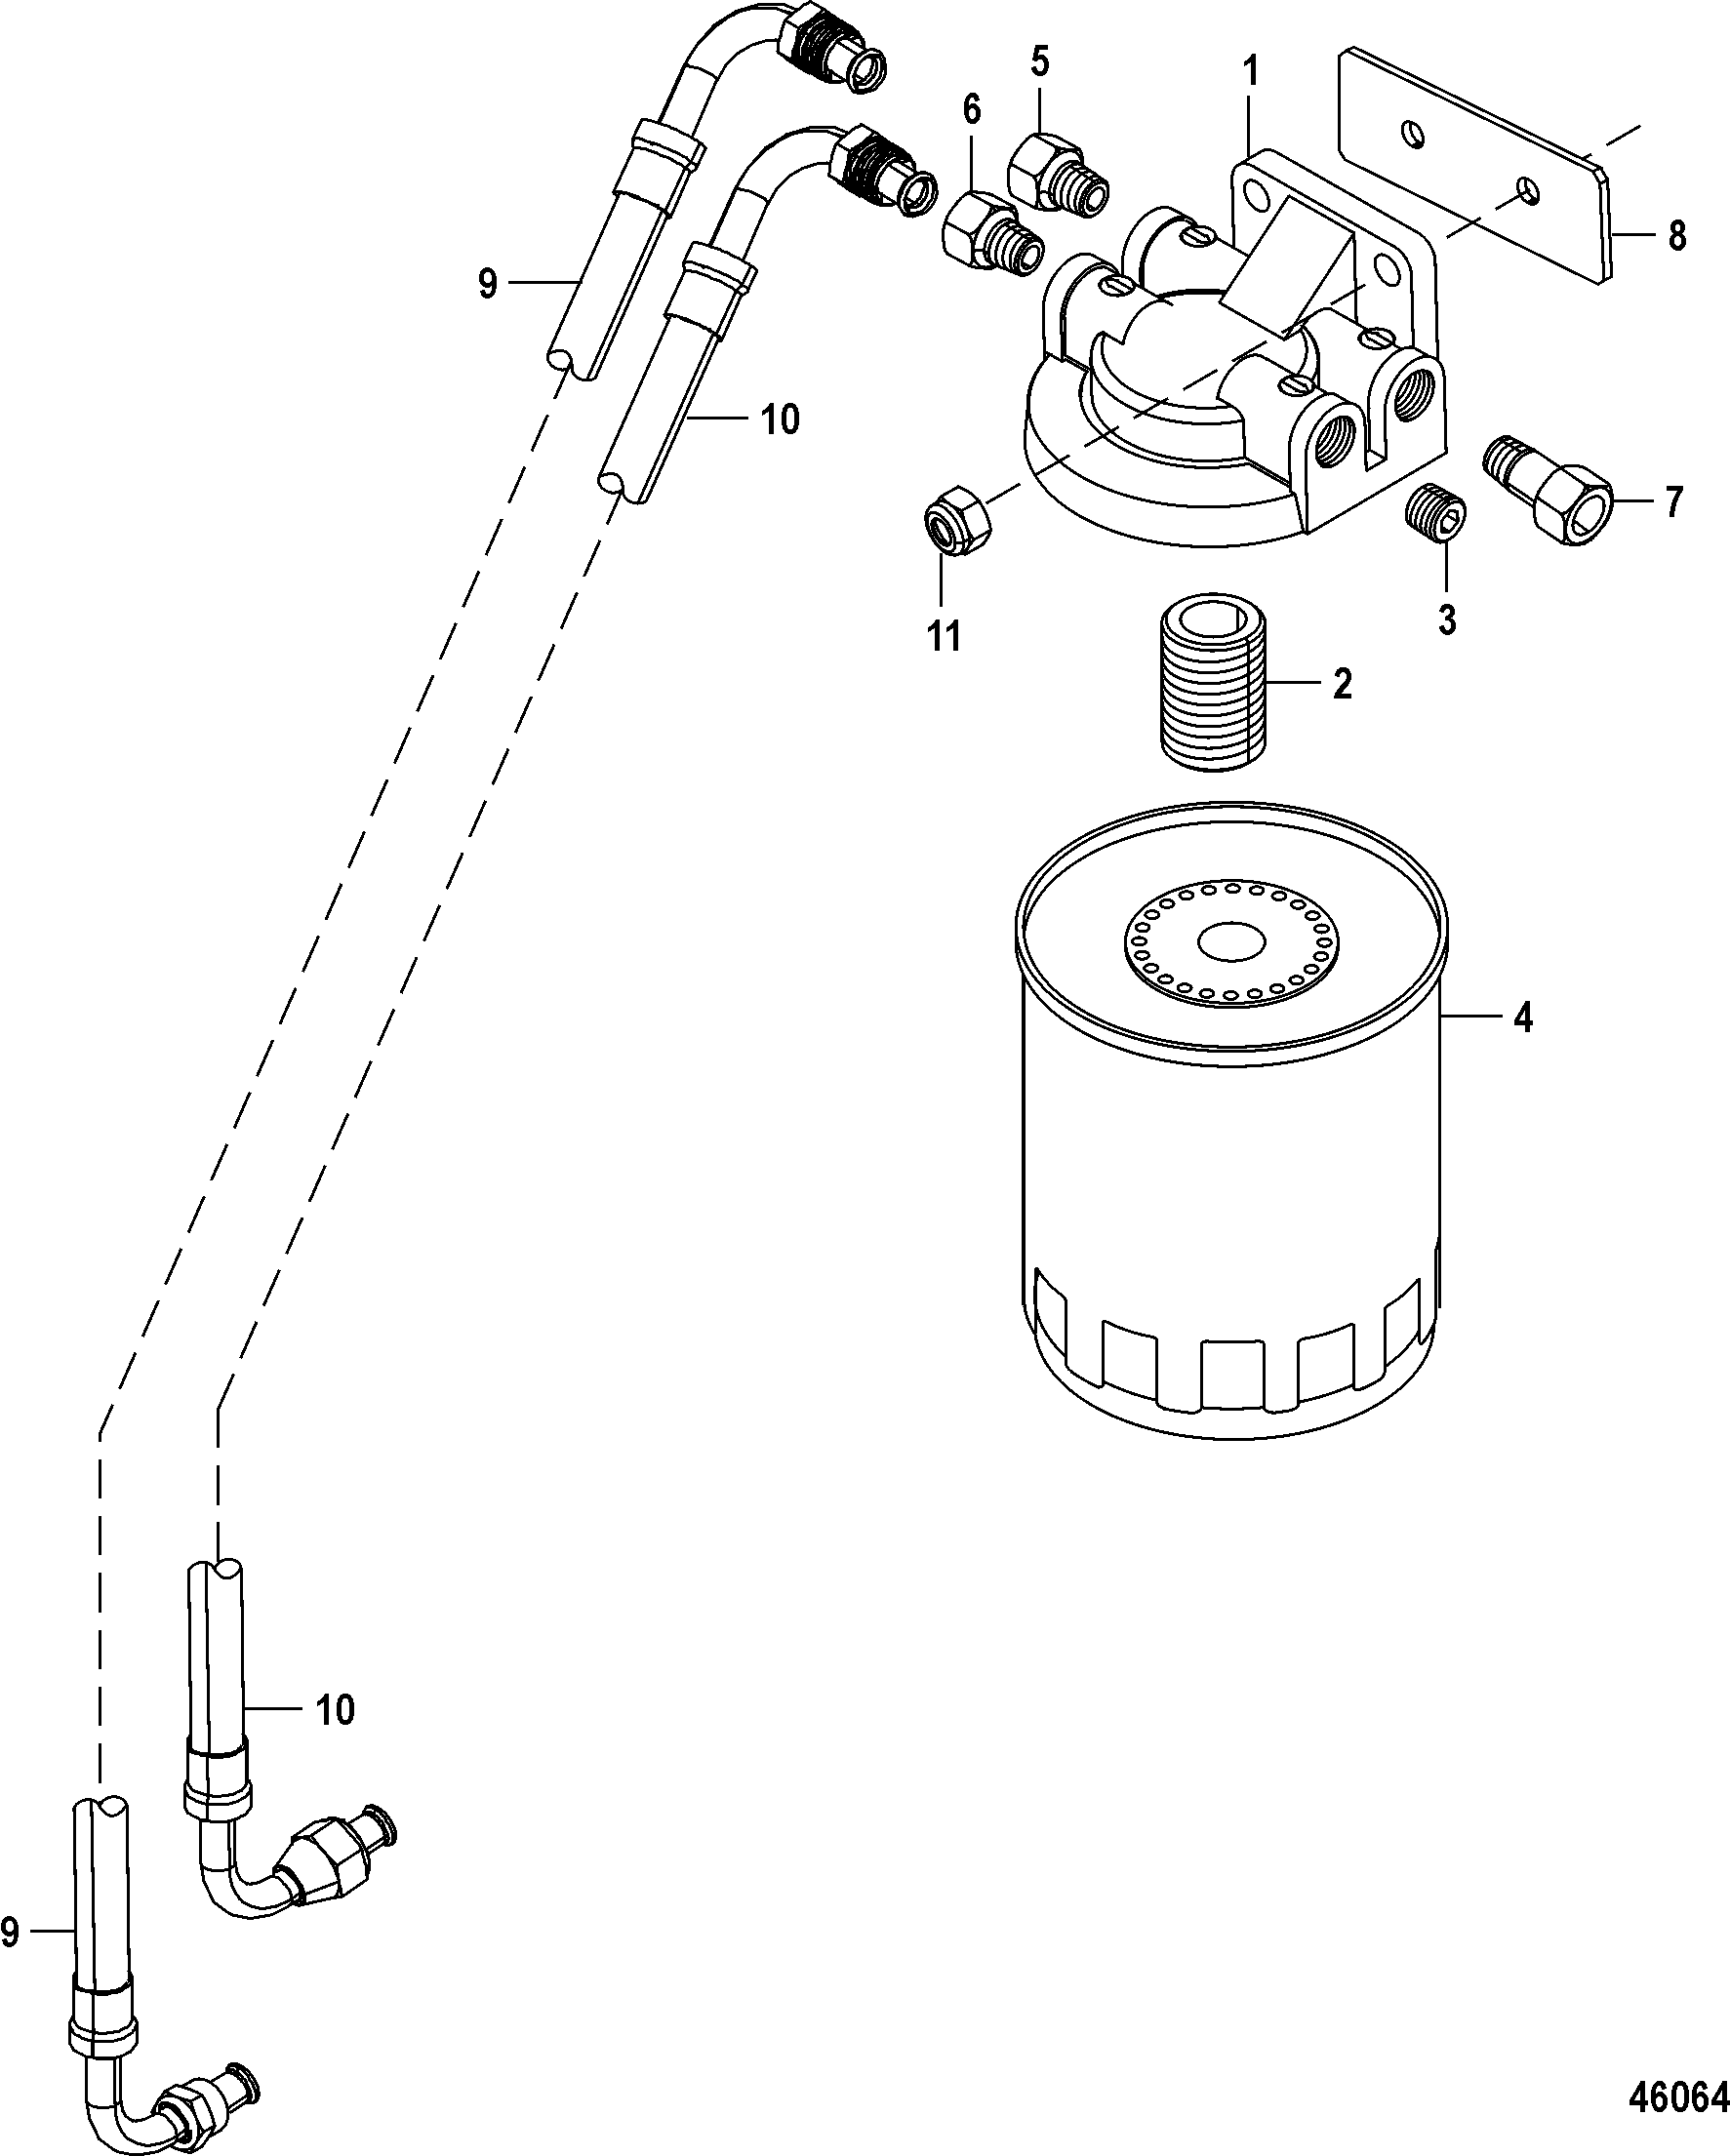 P 0900c1528003c4c8 together with 91 S10 4 3 Tbi Engine Wiring Diagram moreover 91 Lesabre Blower Motor Location further 4th gen tech2 further Exhaust Systems For Cars. on 91 toyota coolant temp sensor location